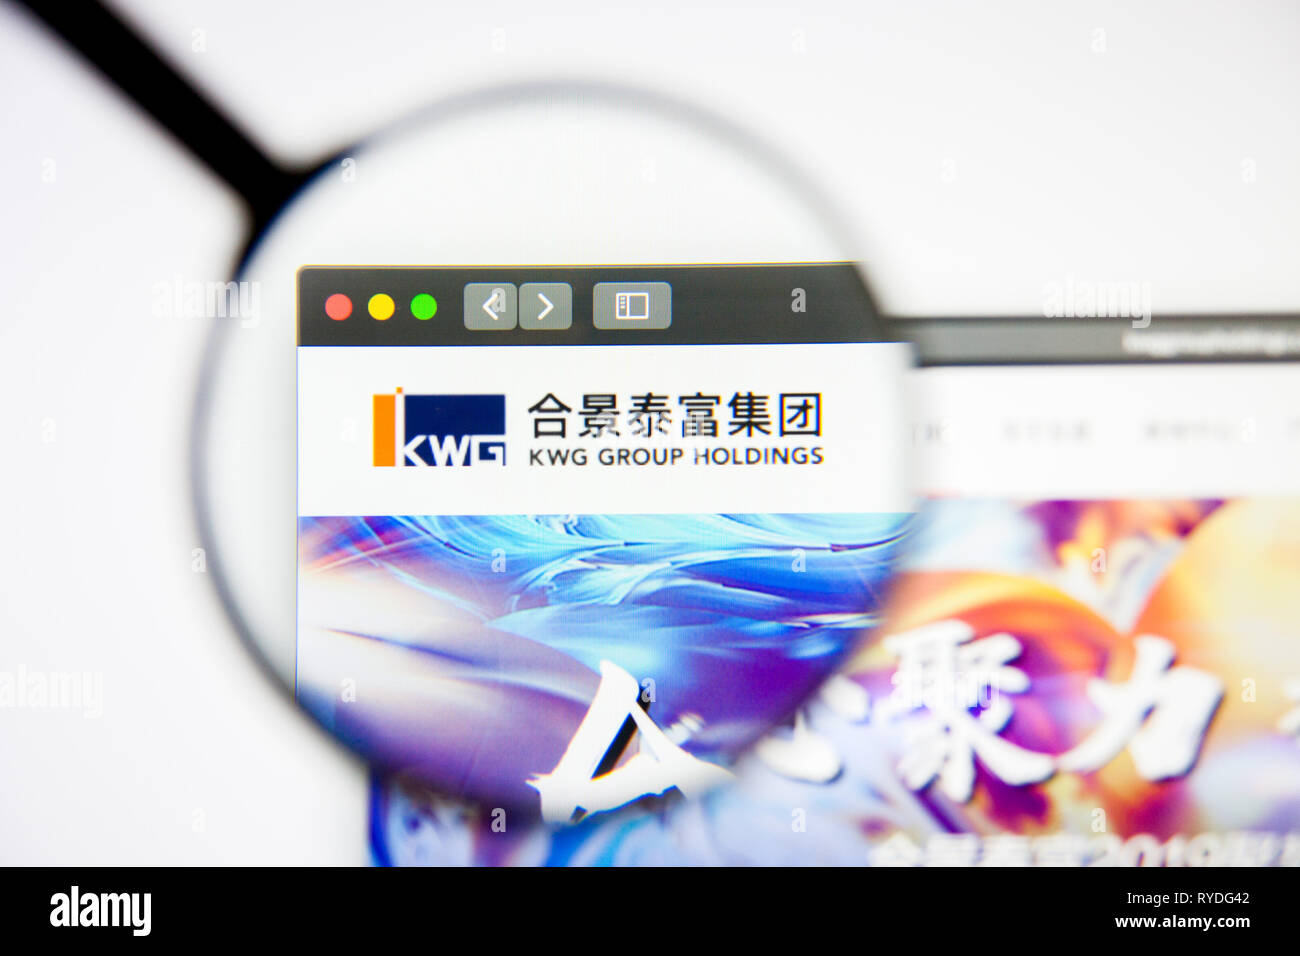 Los Angeles, California, USA - 5 March 2019: KWG Property Holding website homepage. KWG Property Holding logo visible on display screen, Illustrative - Stock Image